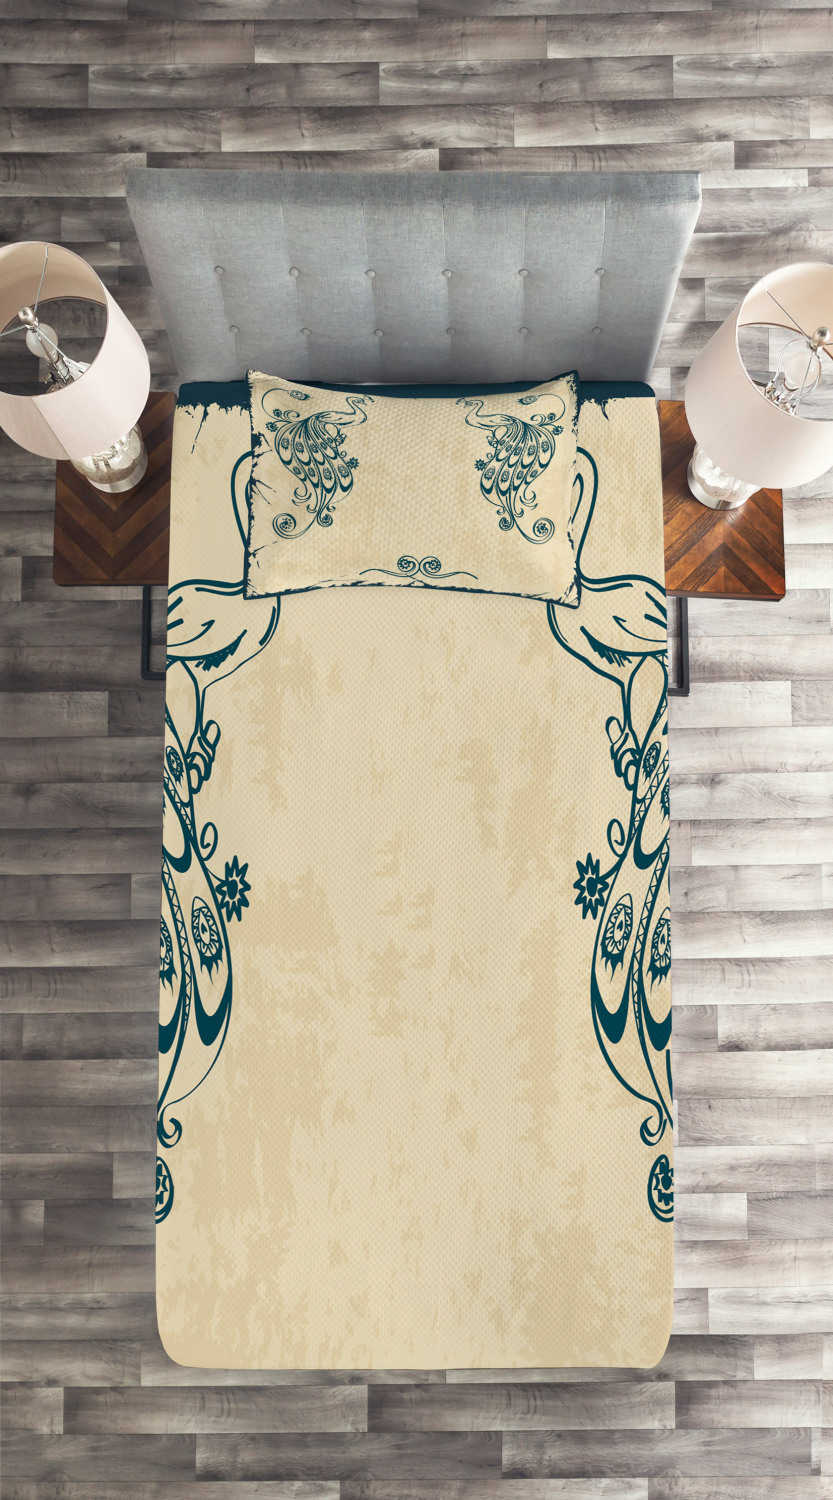 Beige-Teal-Quilted-Coverlet-amp-Pillow-Shams-Set-Vintage-Peacock-Bird-Print thumbnail 4